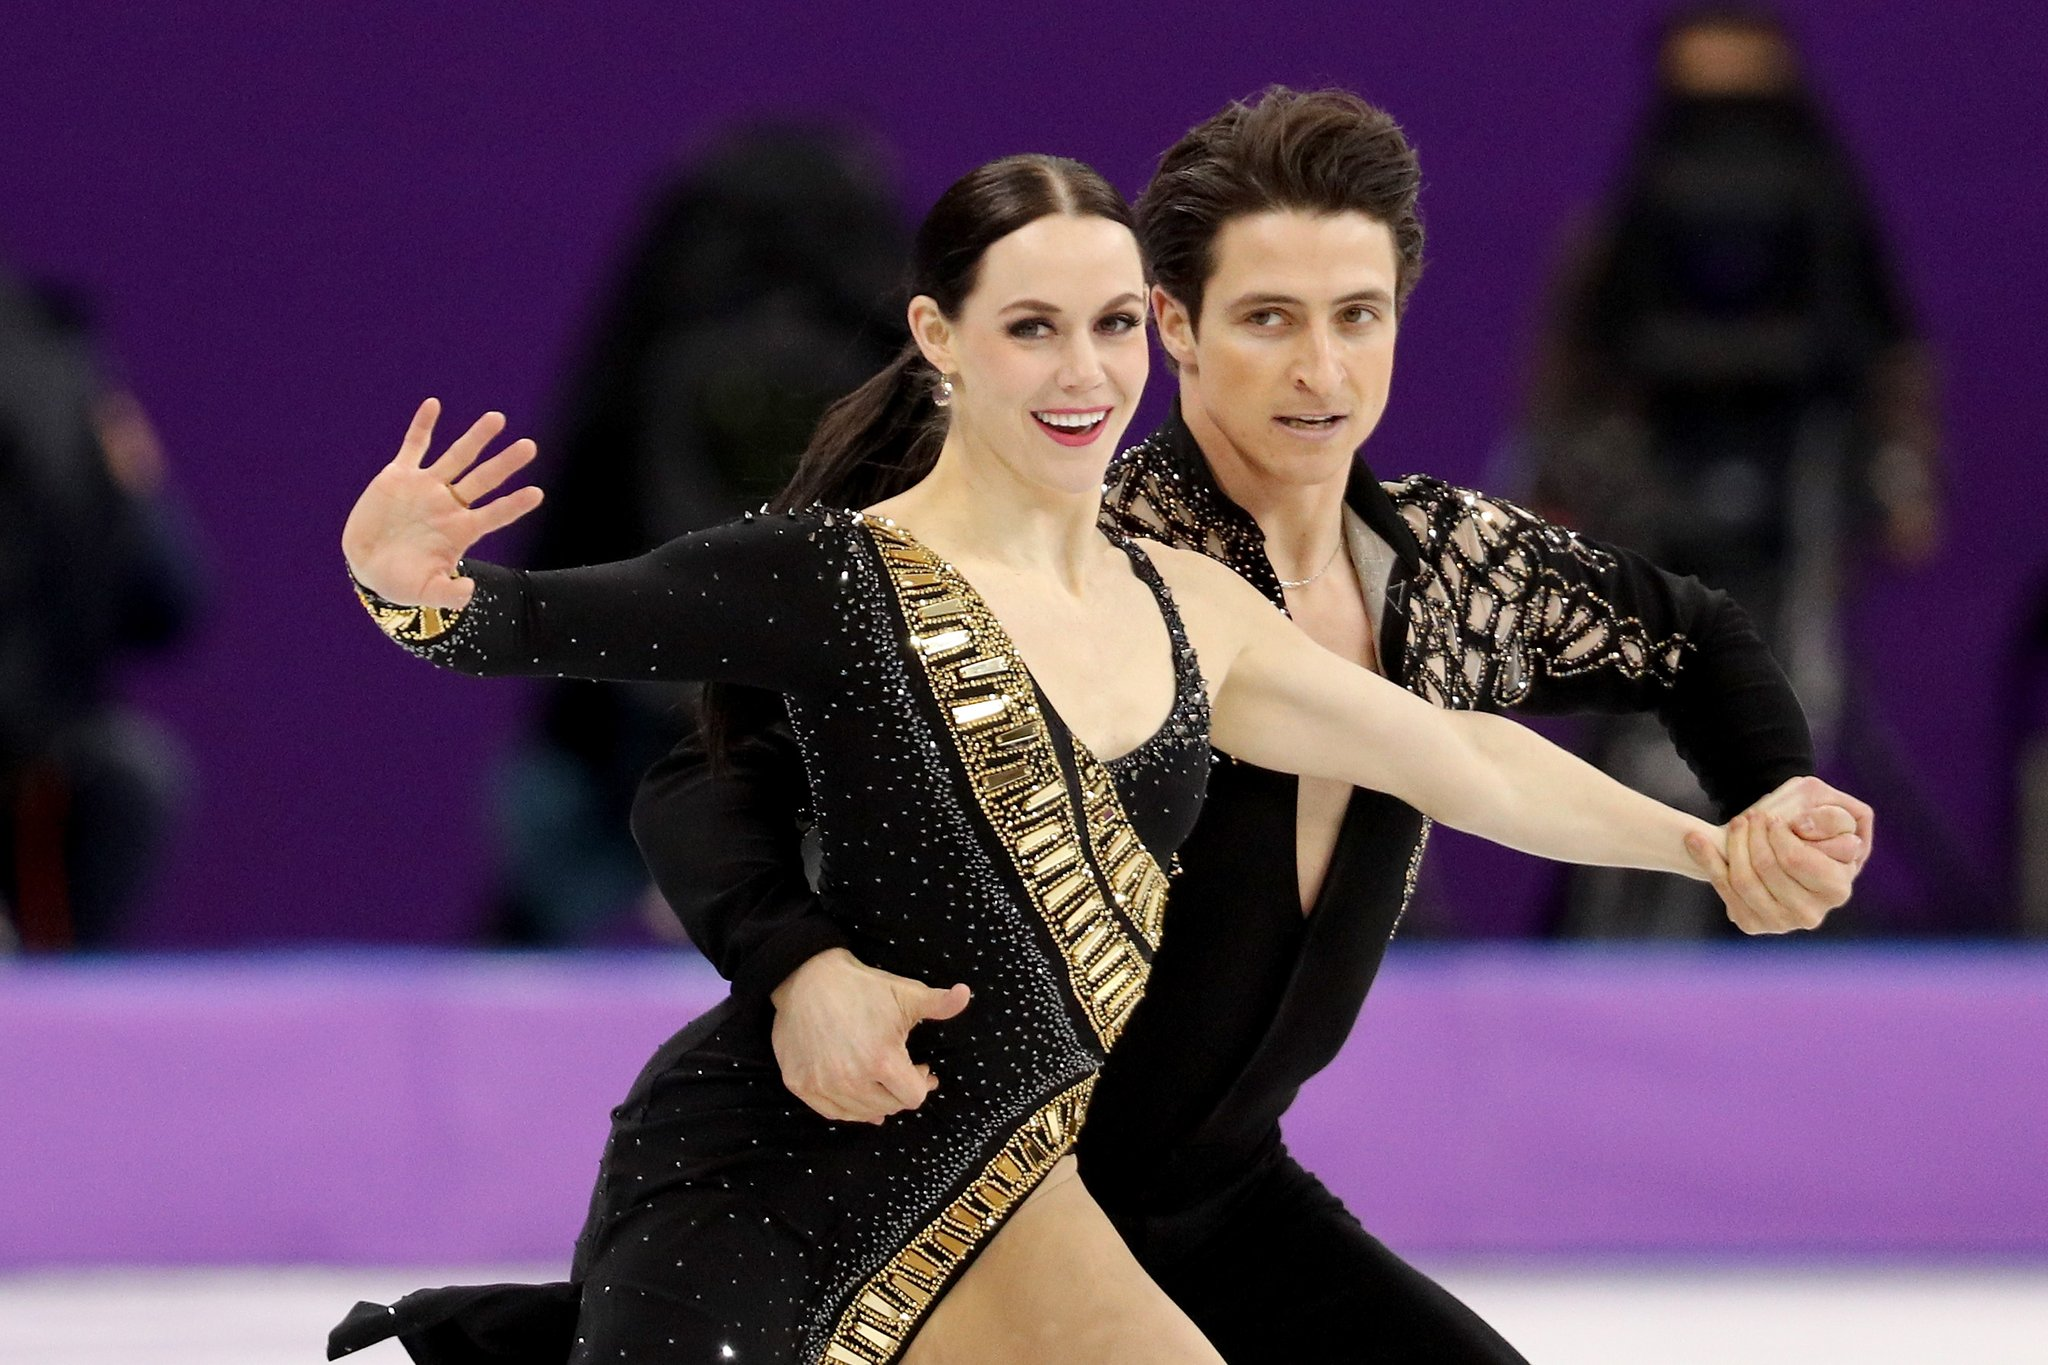 Are Tessa Virtue and Scott Moir Dating?